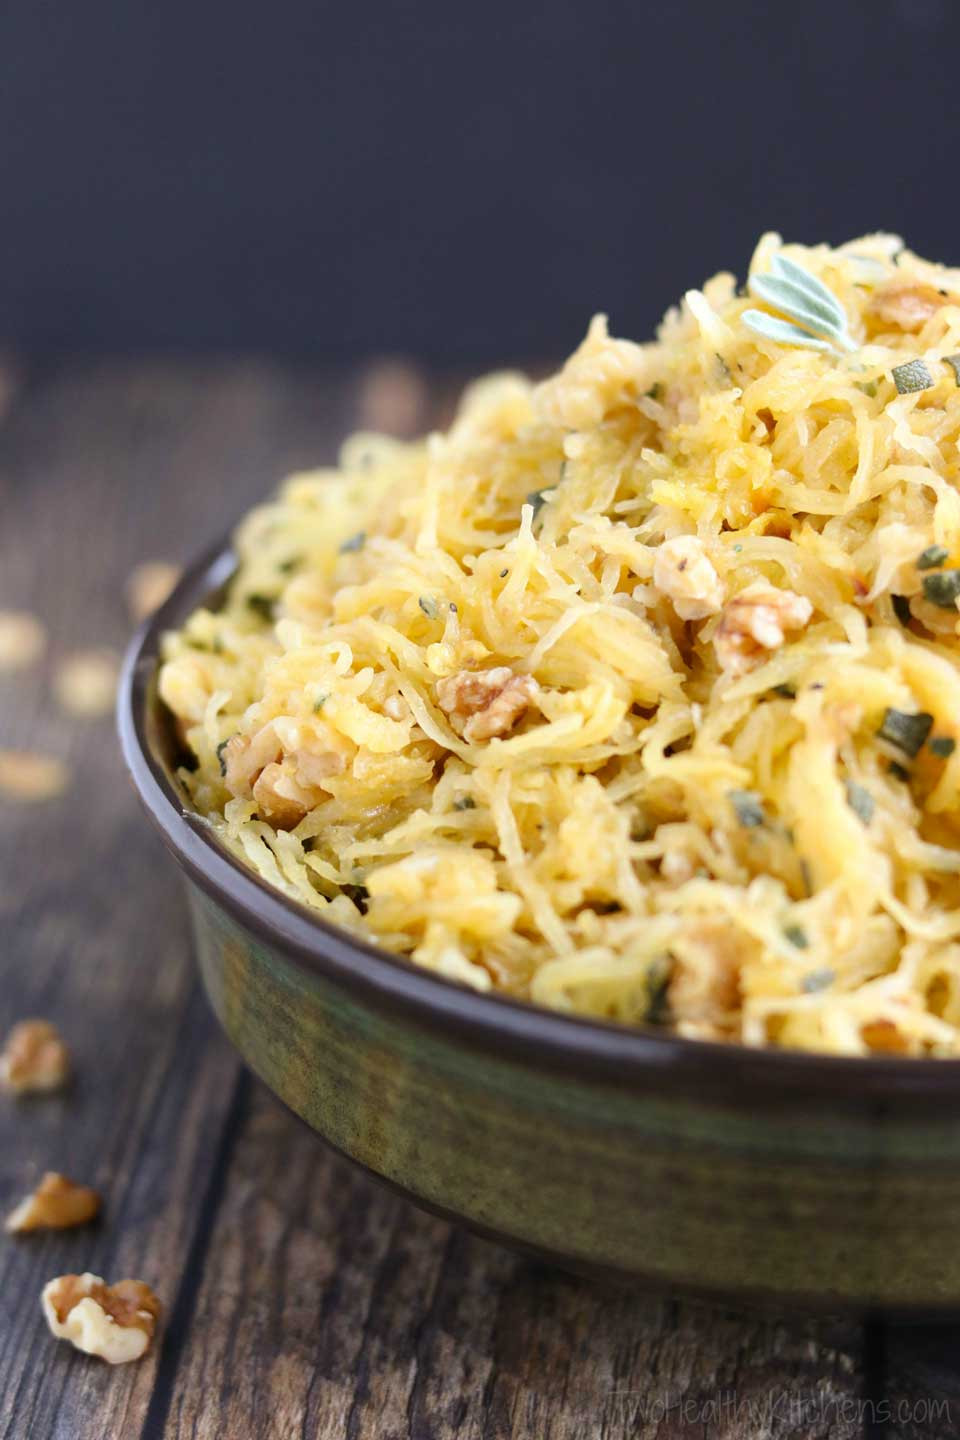 Microwave Spaghetti Squash  Microwave Spaghetti Squash with Sage Browned Butter and